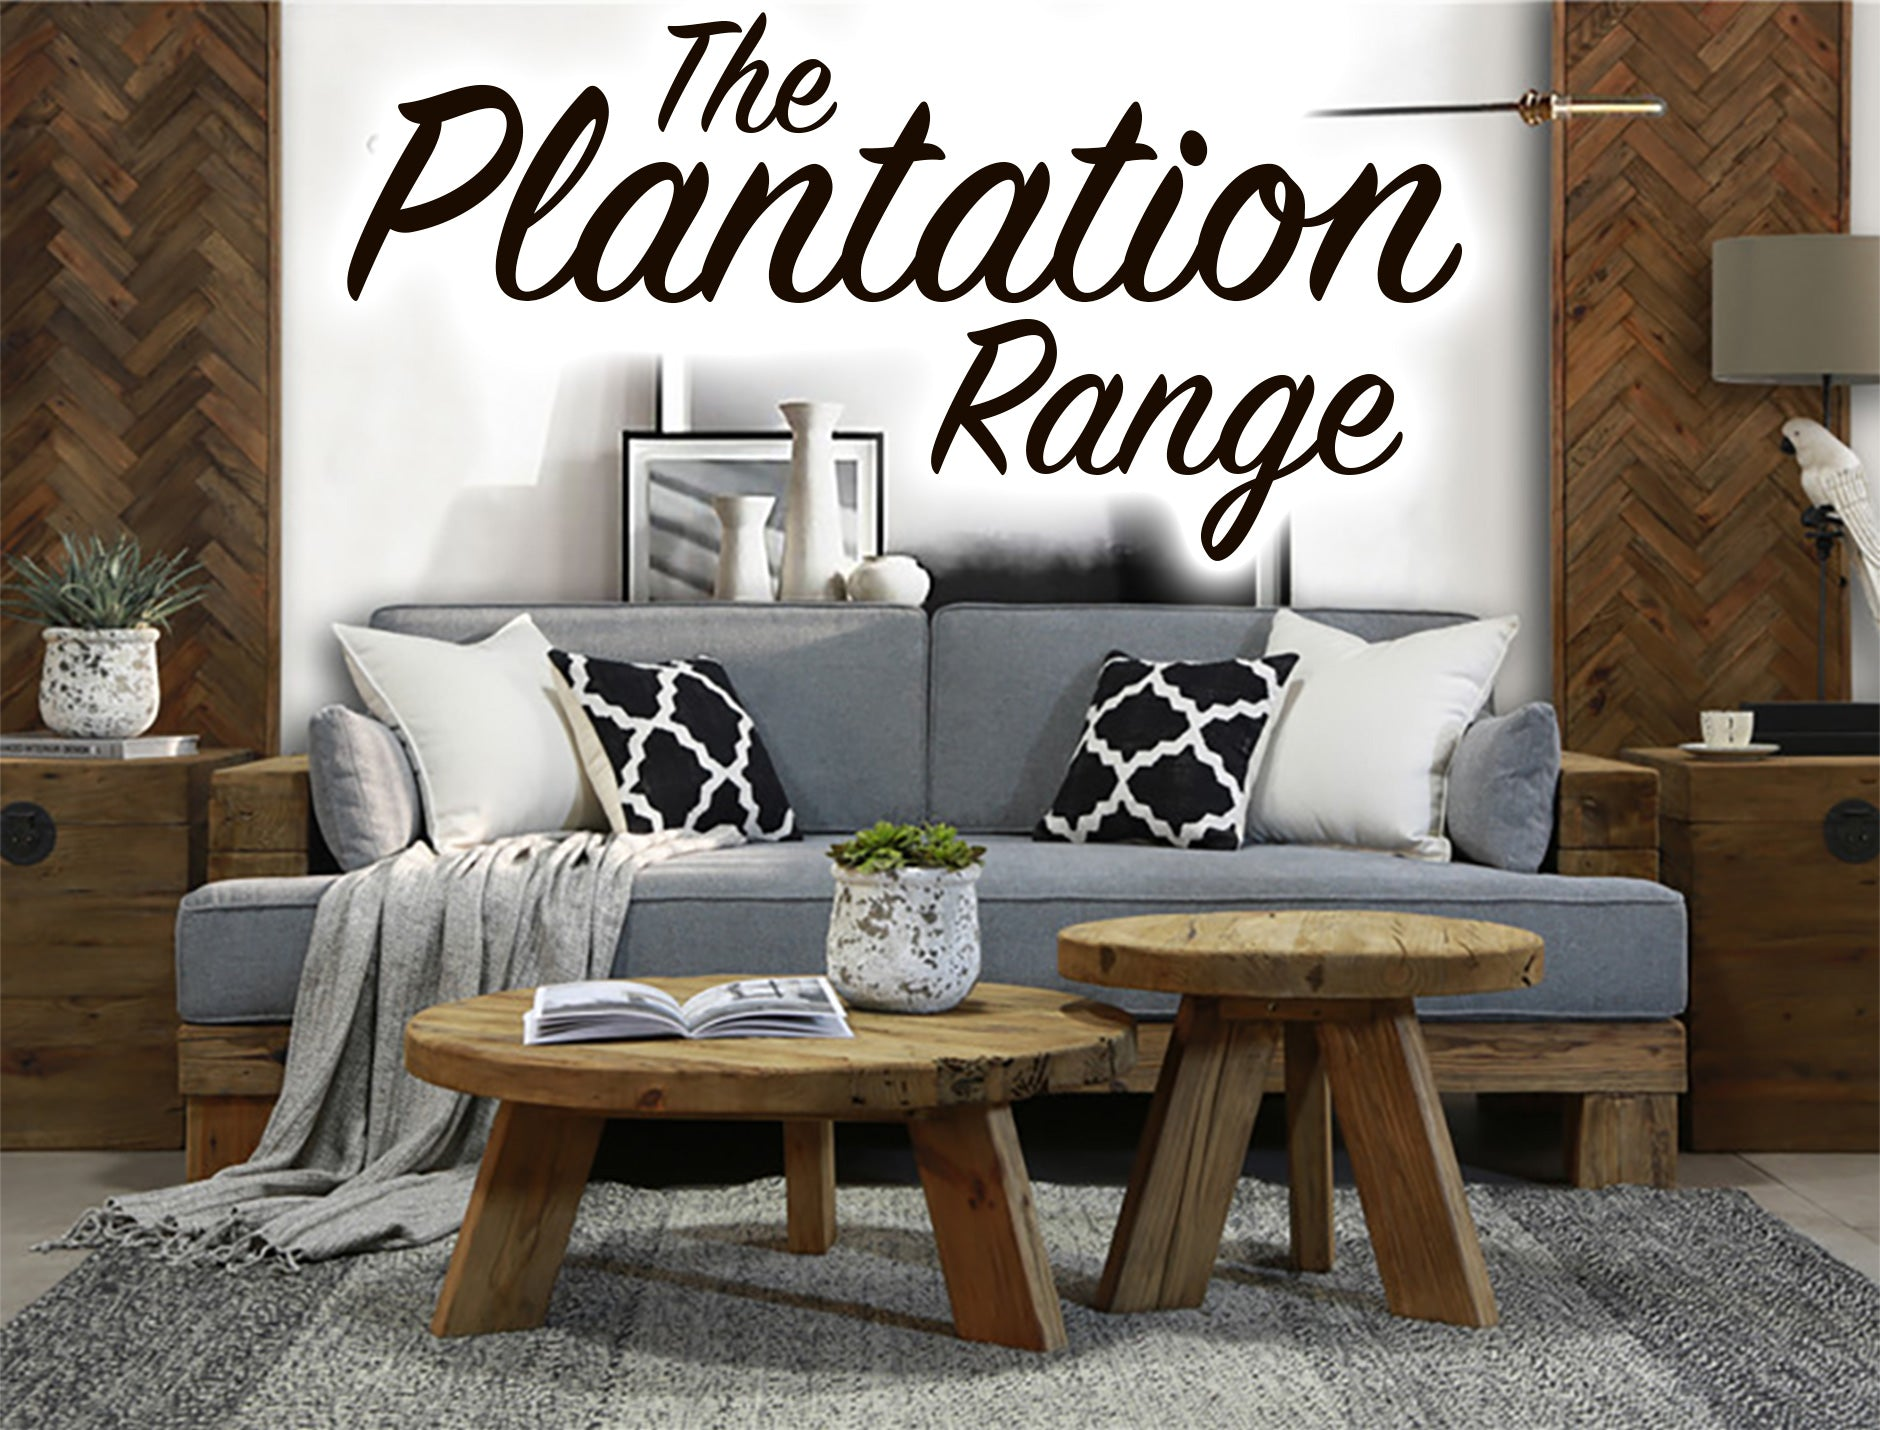 Plantation Range, Brisbane Furniture